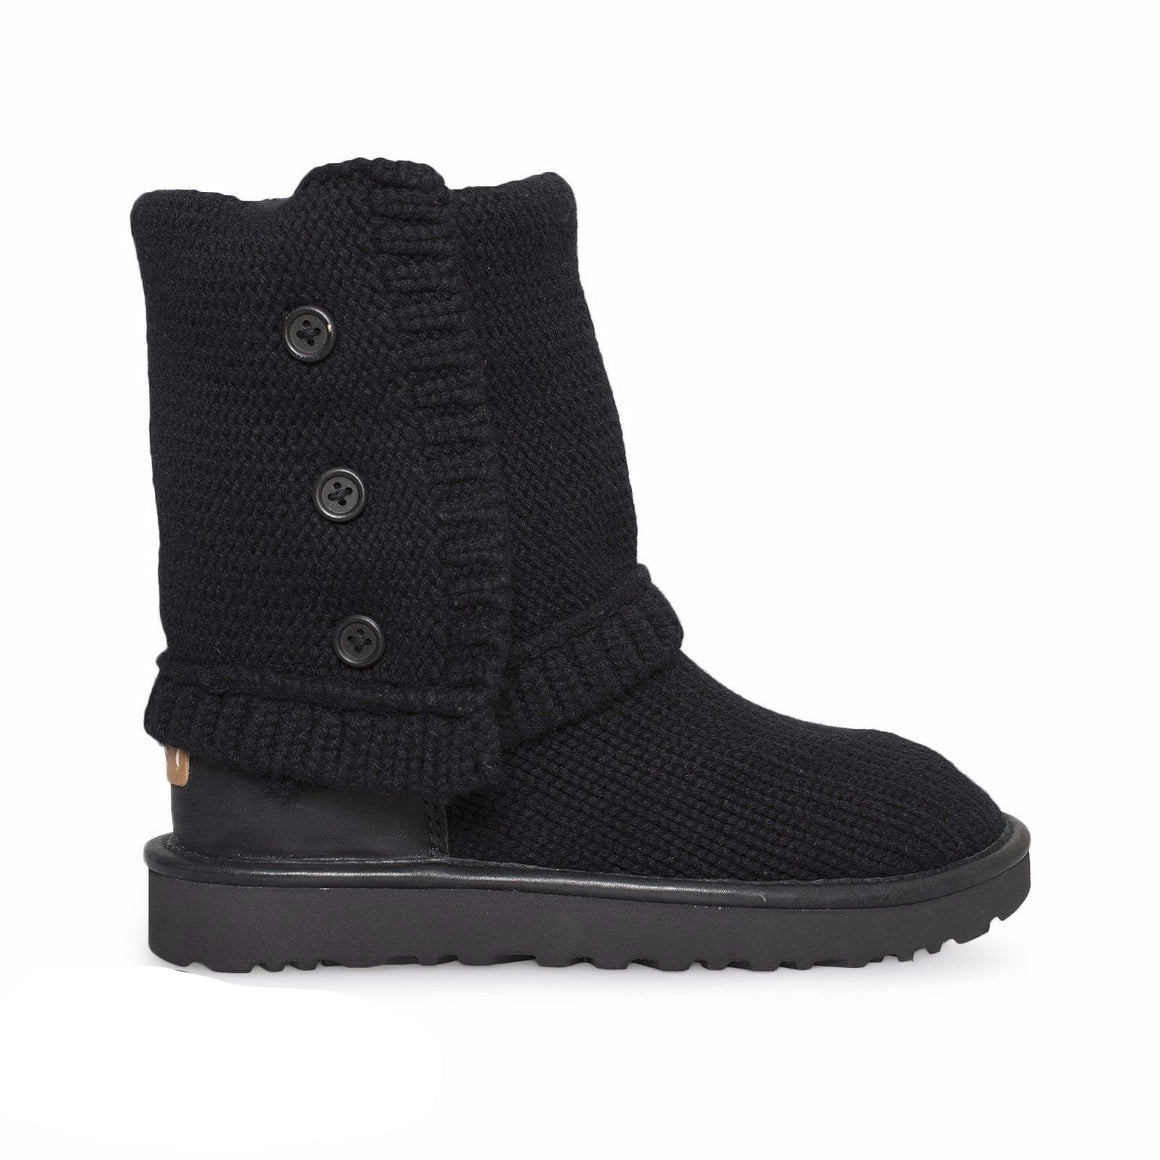 UGG Classic Cardy Cashmere Black Boots